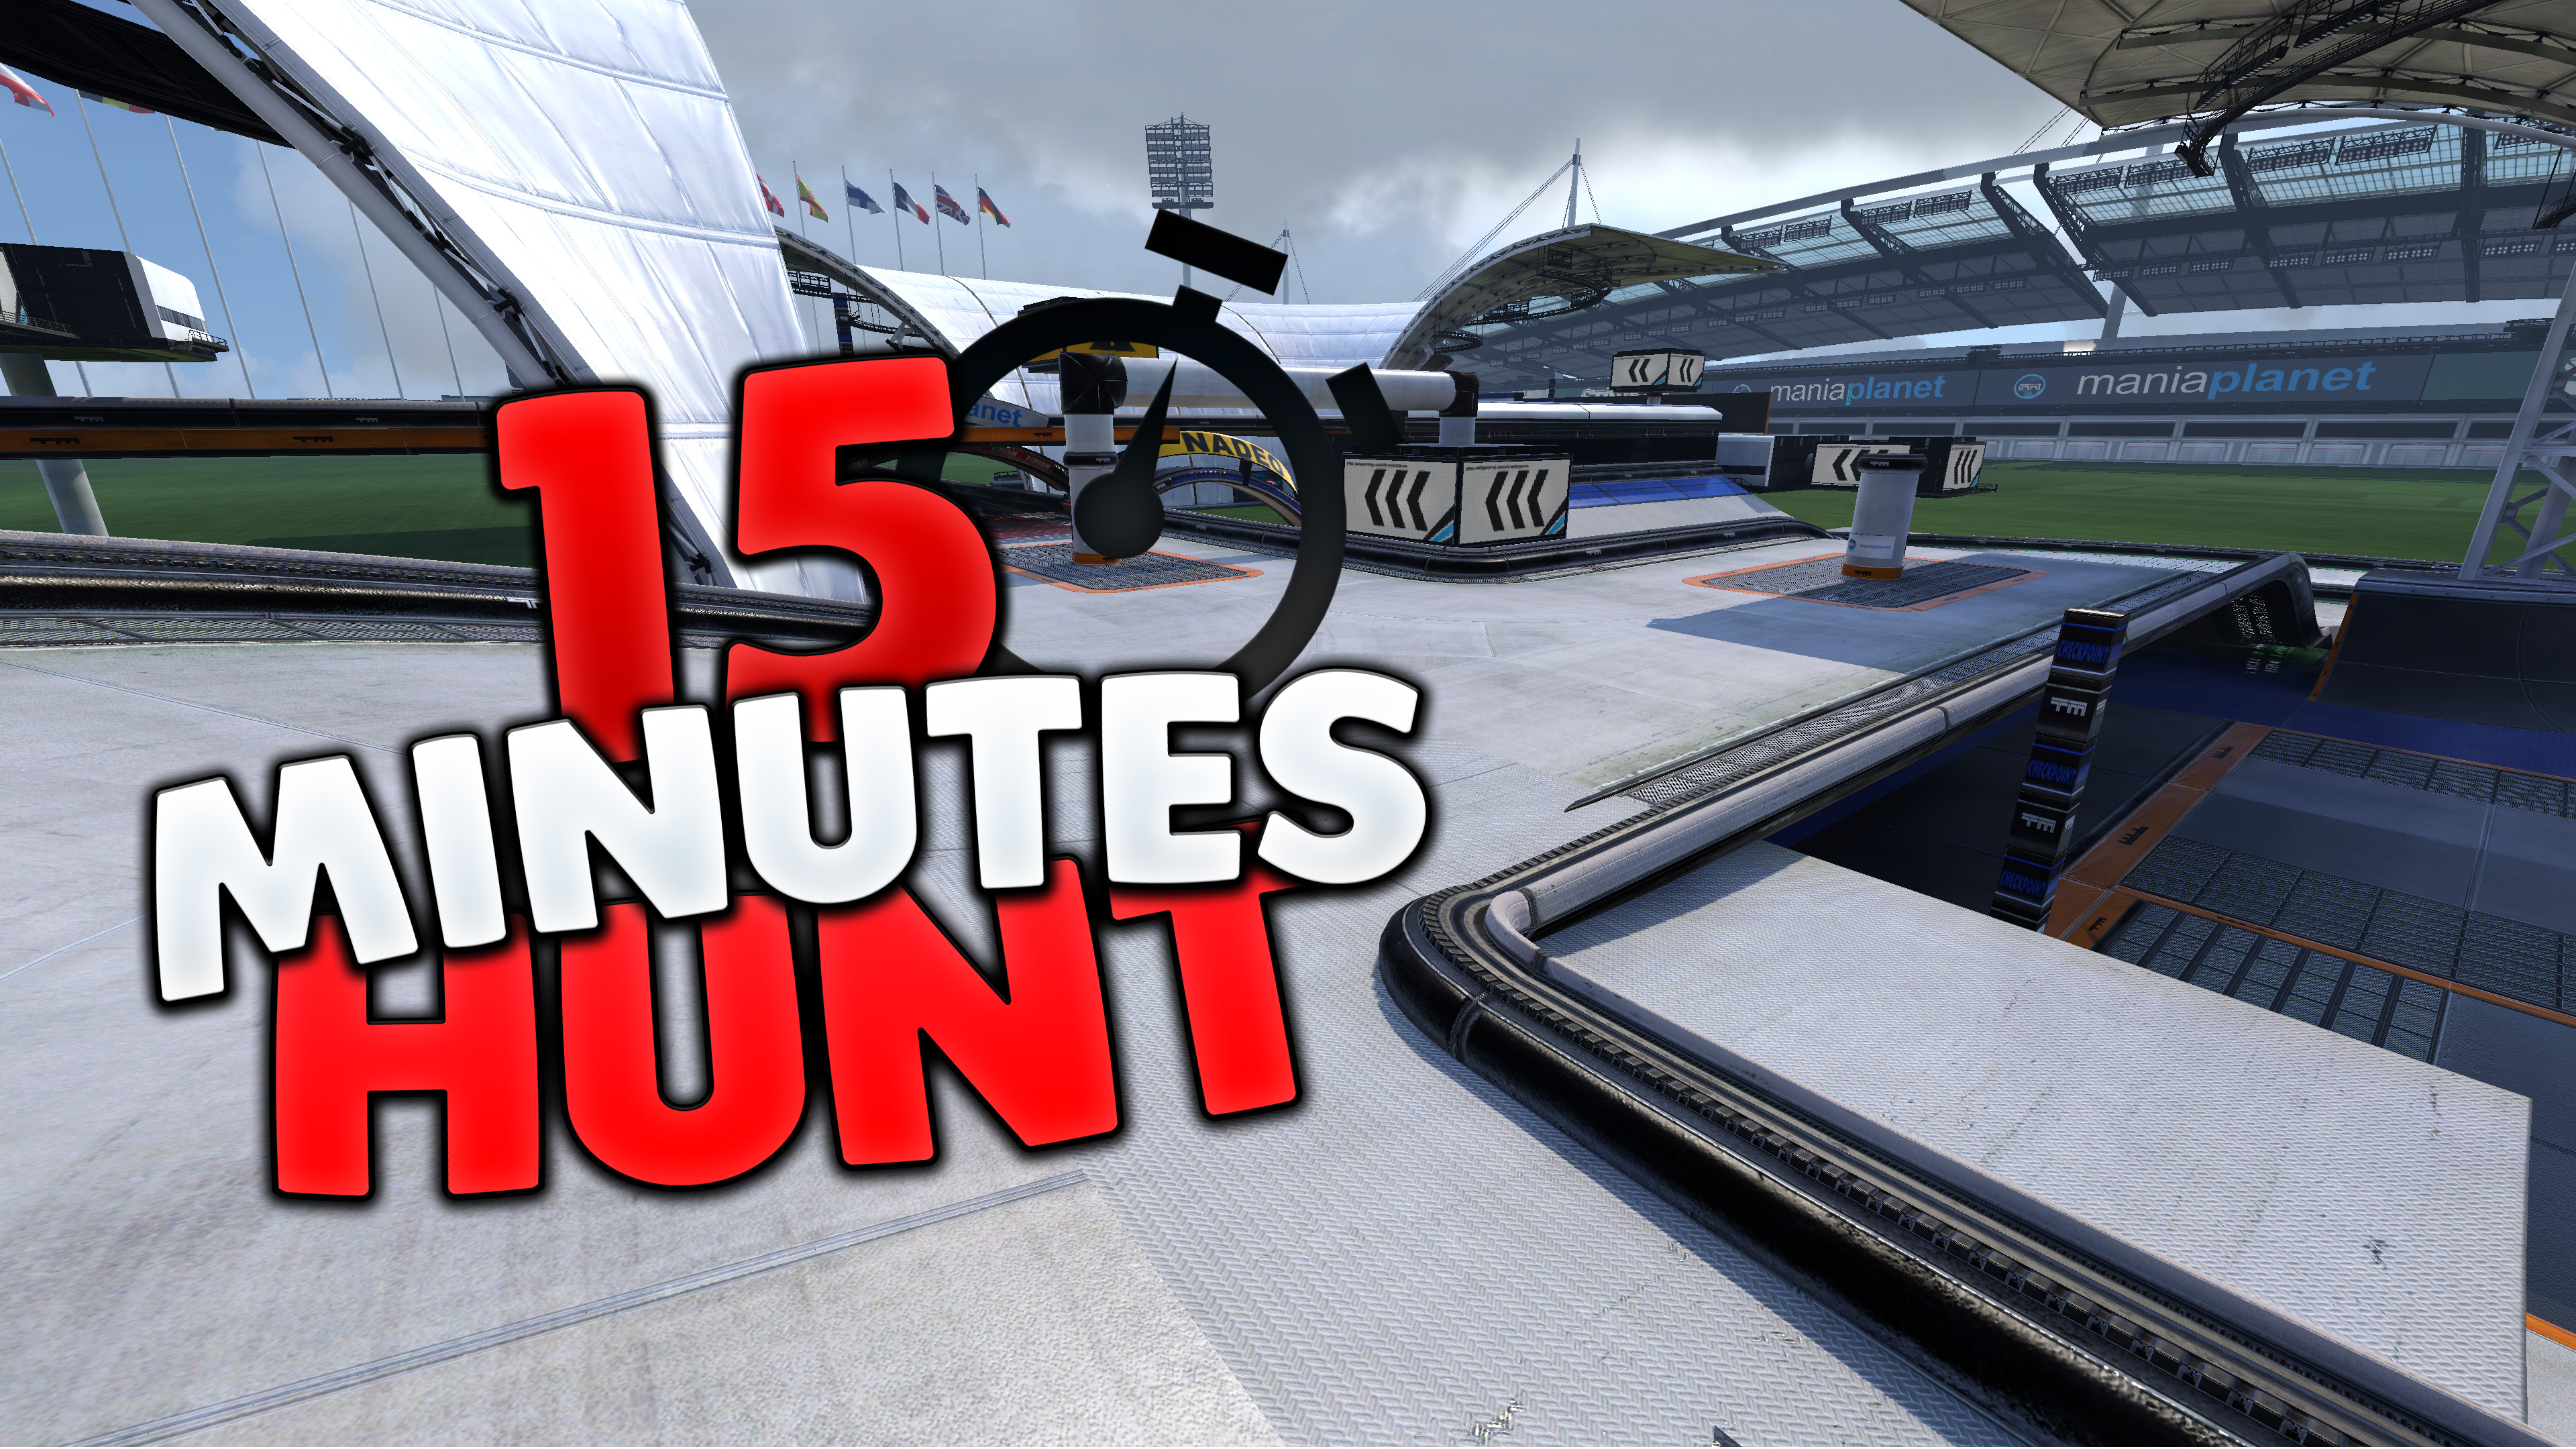 NEW EVENT: 15 minutes Hunt